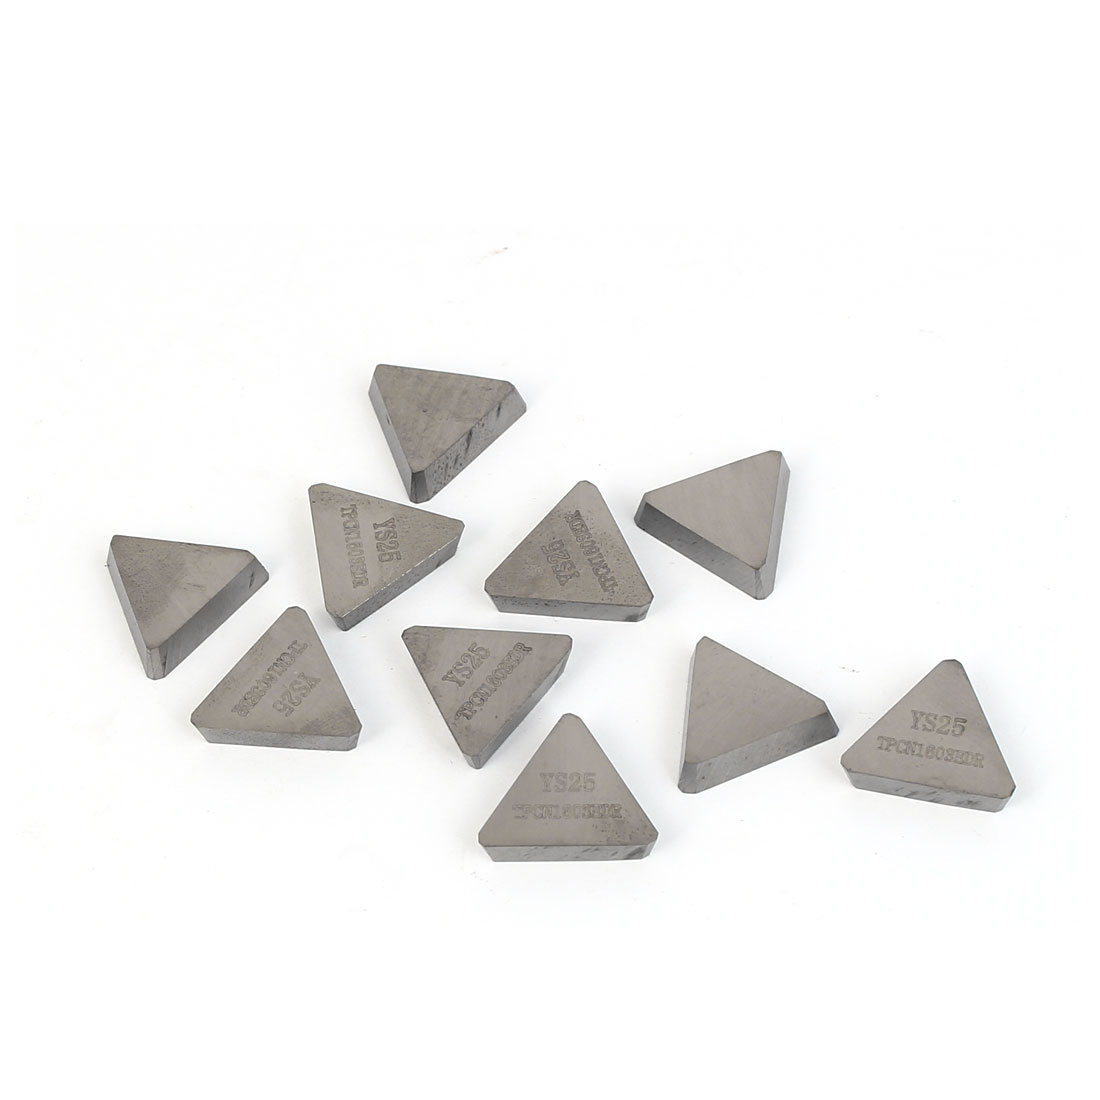 YS25 TPCN1603EDR Machine Lathe Milling Tool Triangle Gray Carbide Turning Insert